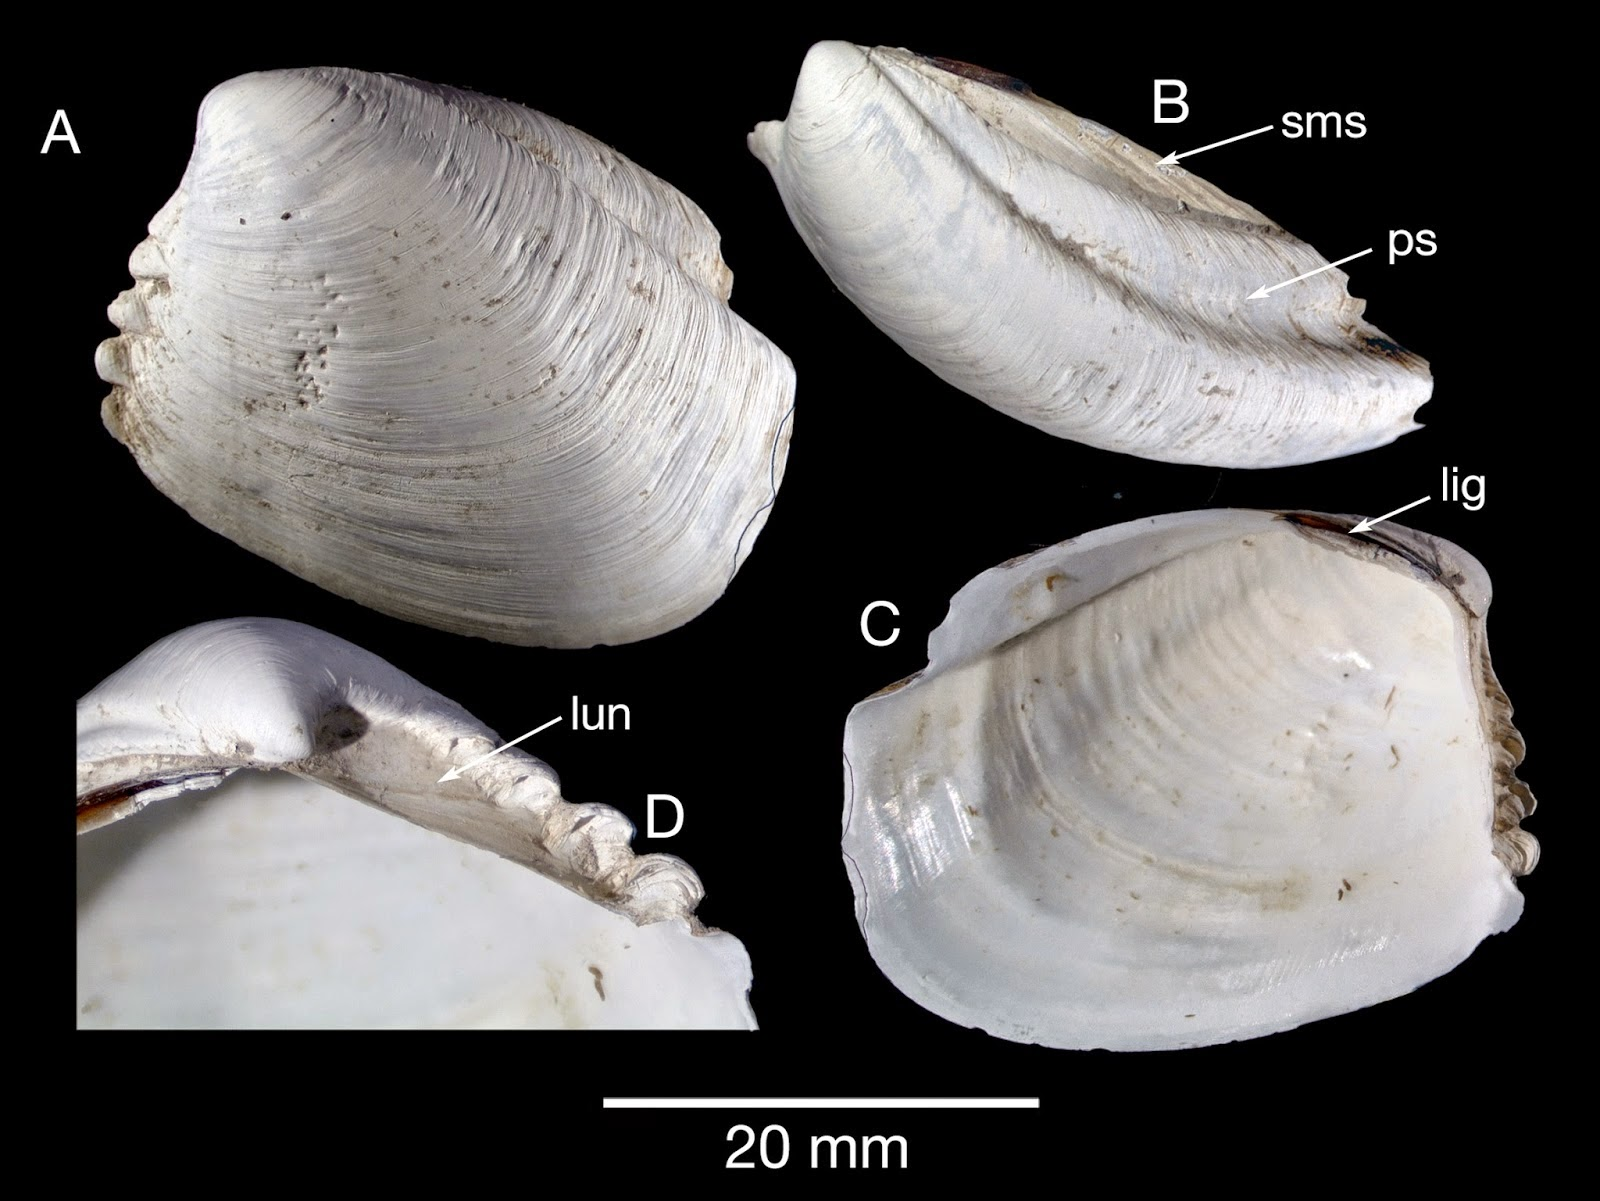 http://sciencythoughts.blogspot.co.uk/2014/10/a-new-species-of-thyasiroid-clam-from.html